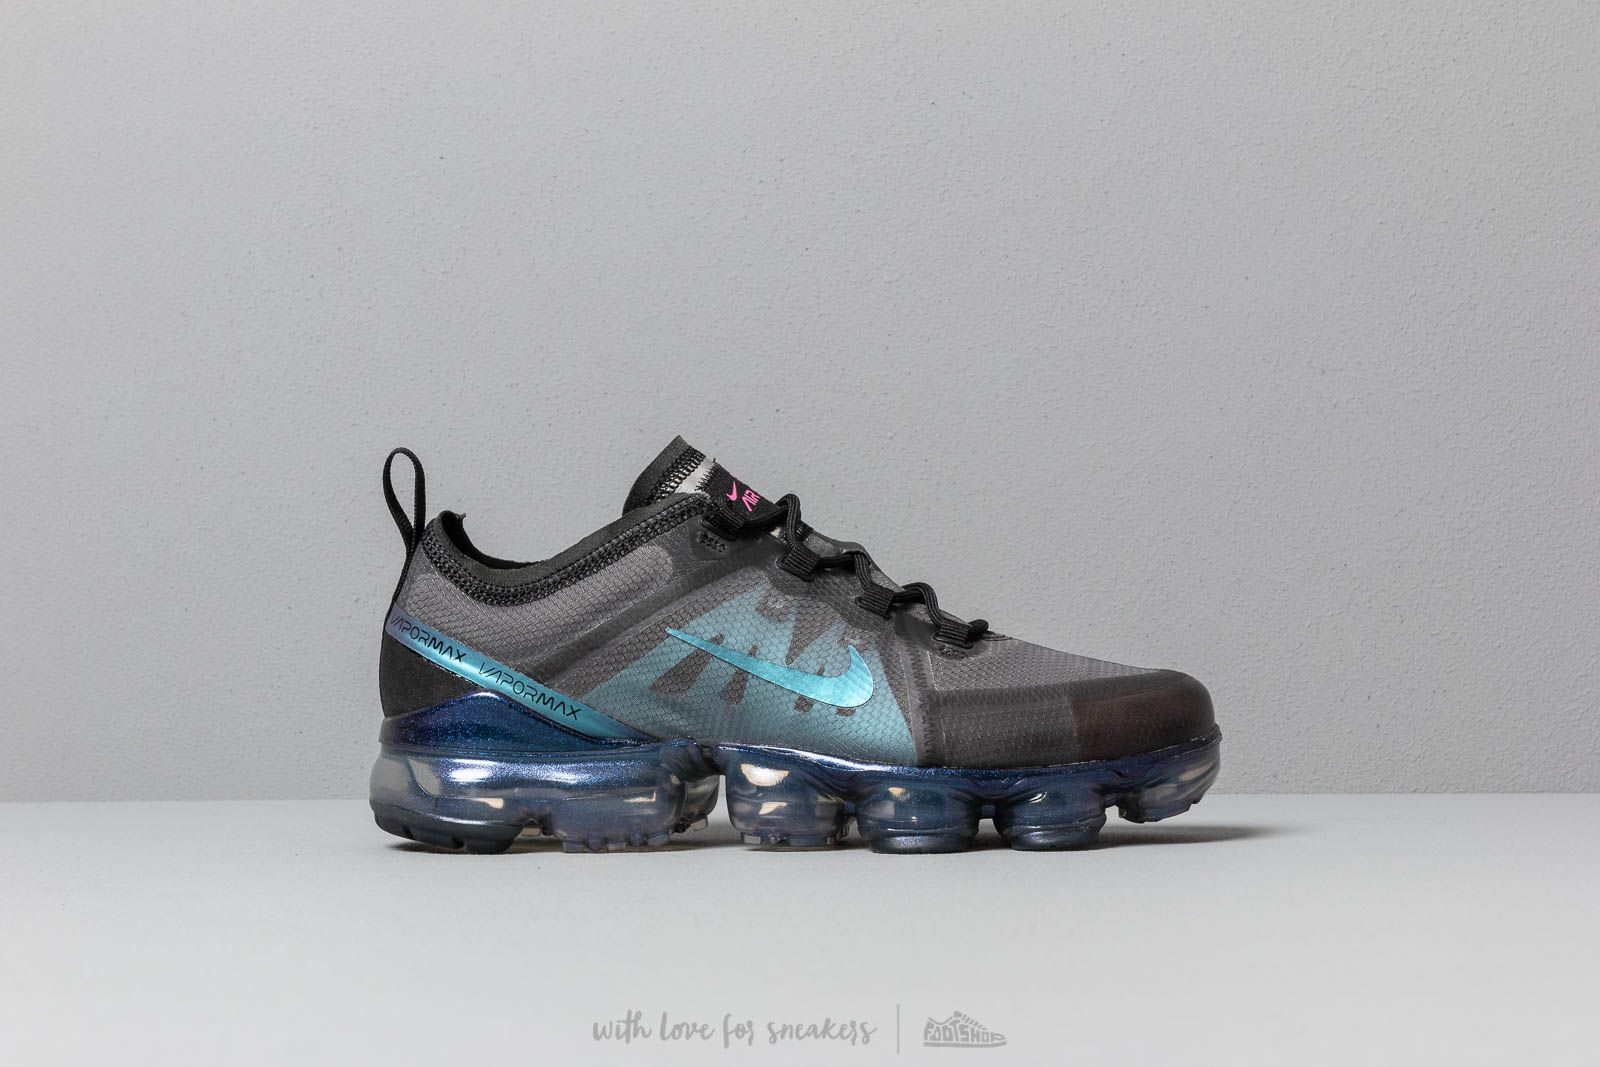 Nike Air Vapormax 2019 Gs Black Laser Fuchsia Anthracite Footshop